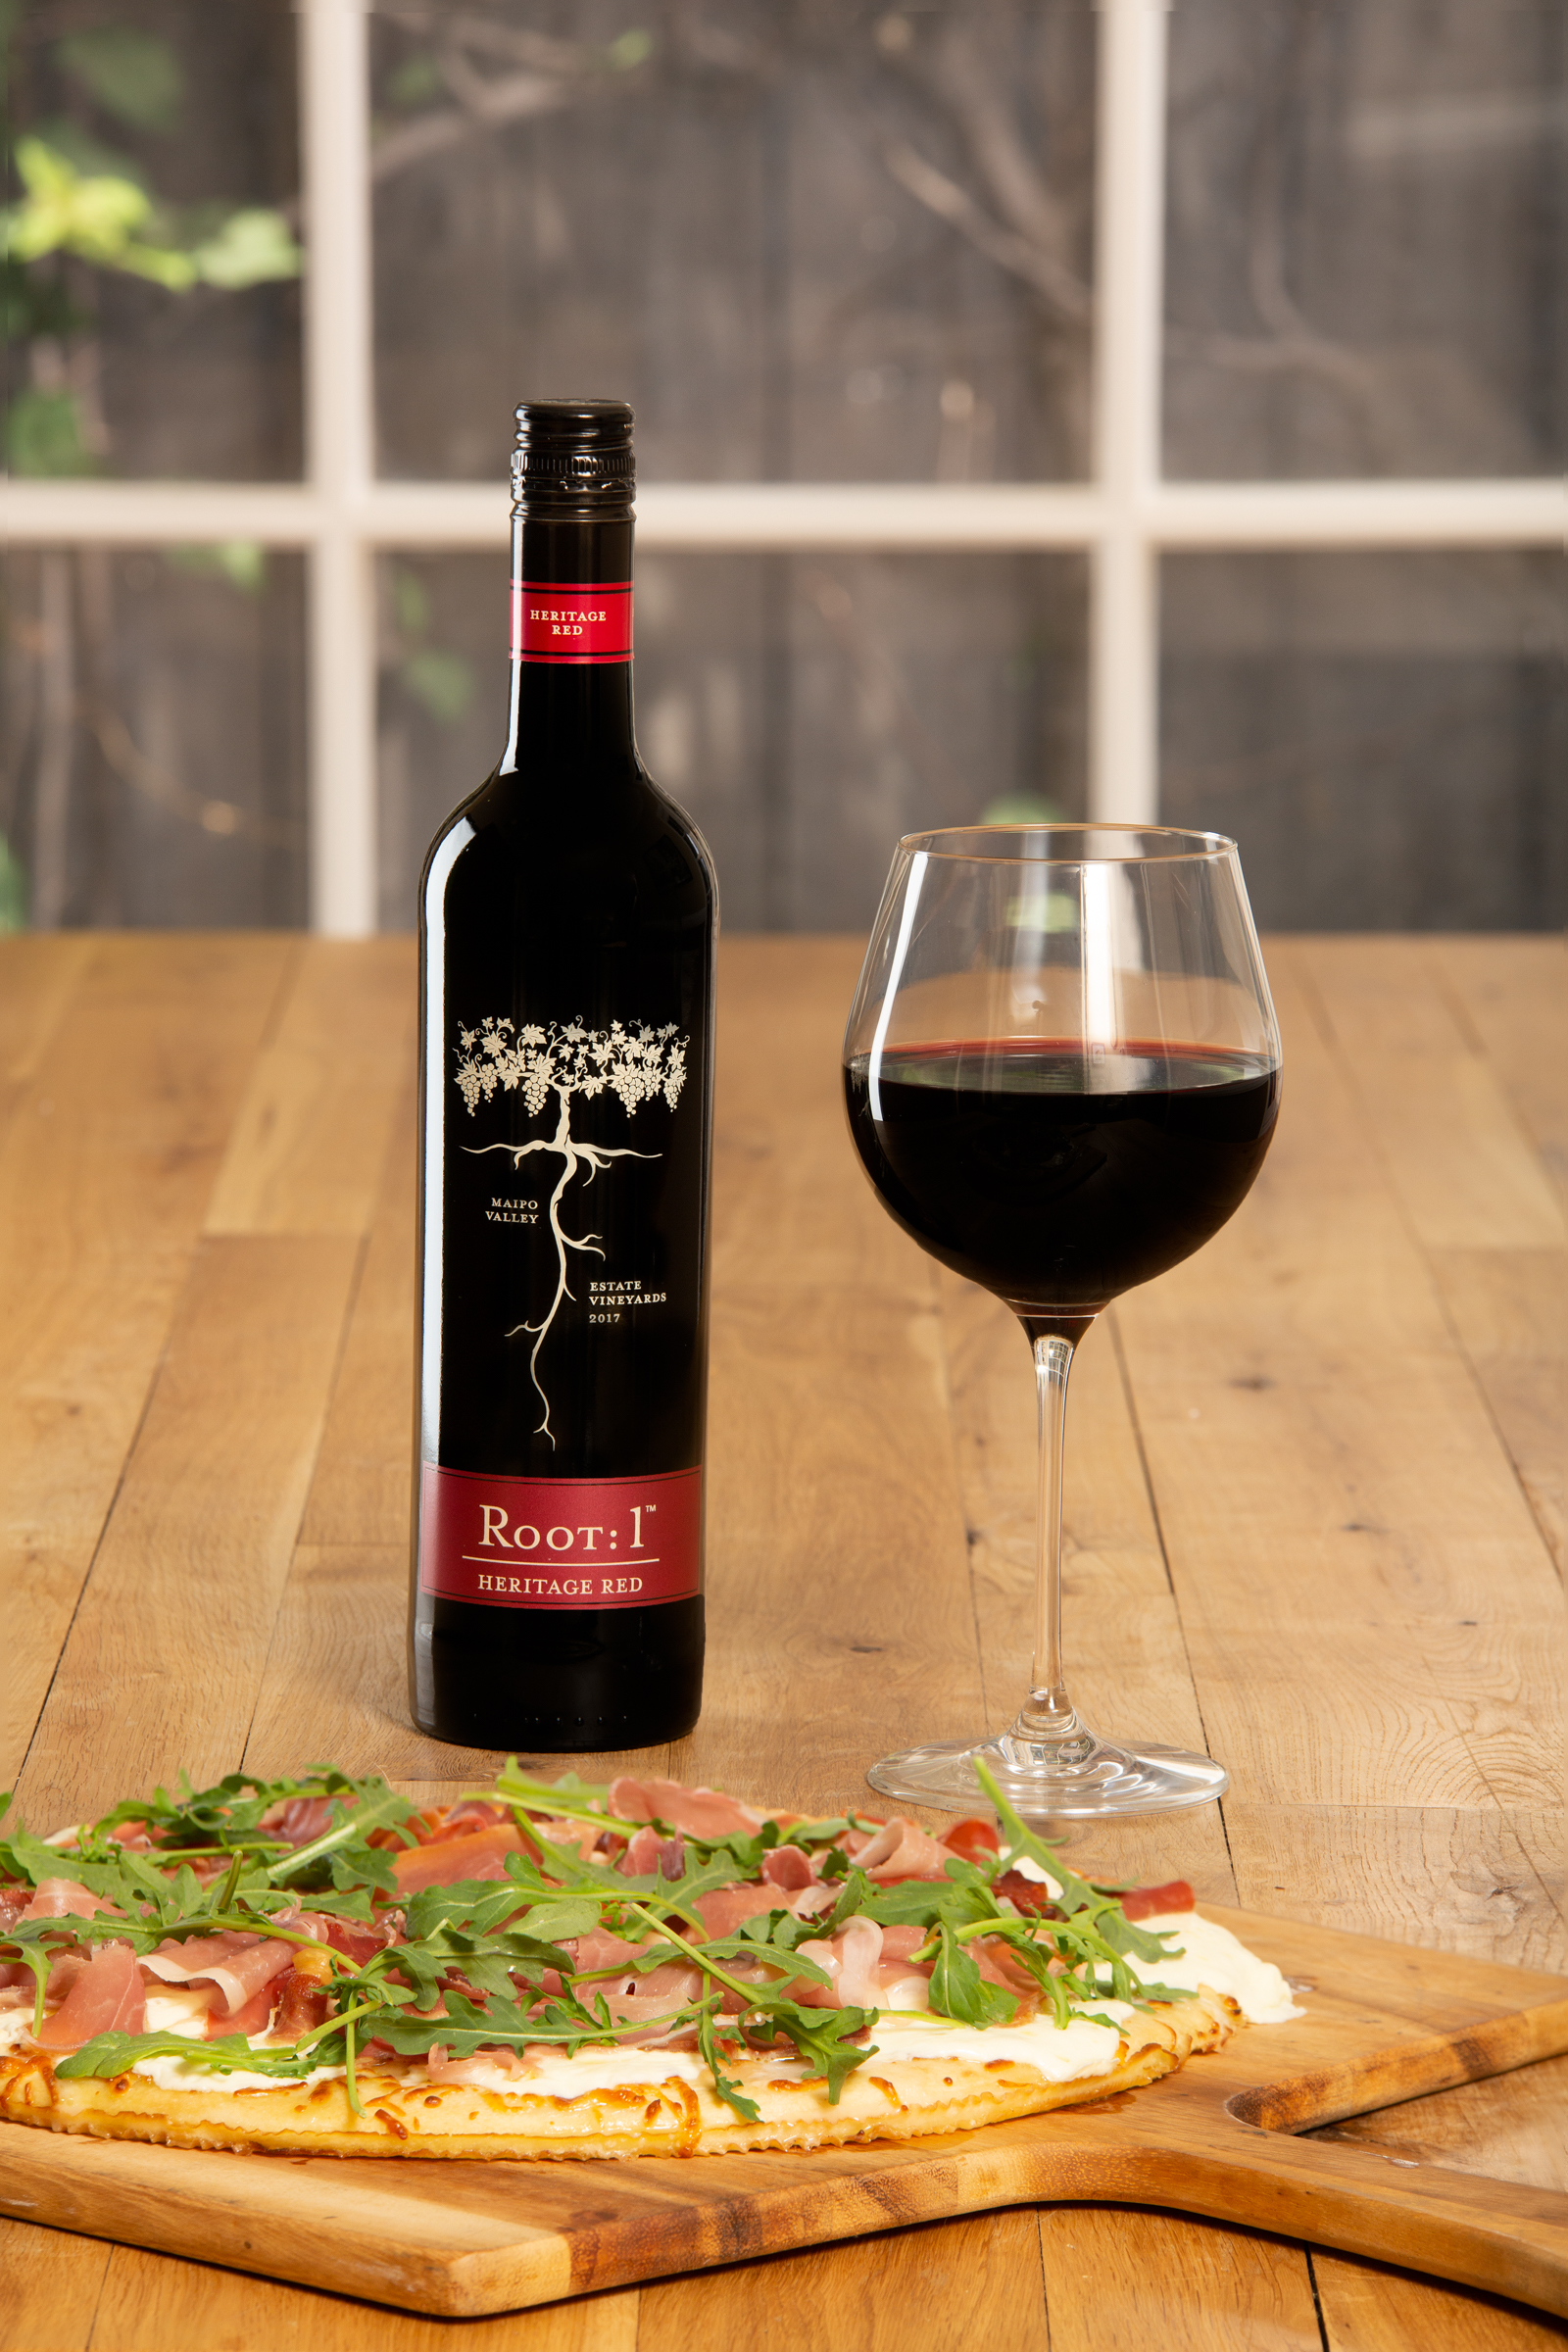 White sauce pizza with Chilean red wine by Root: 1